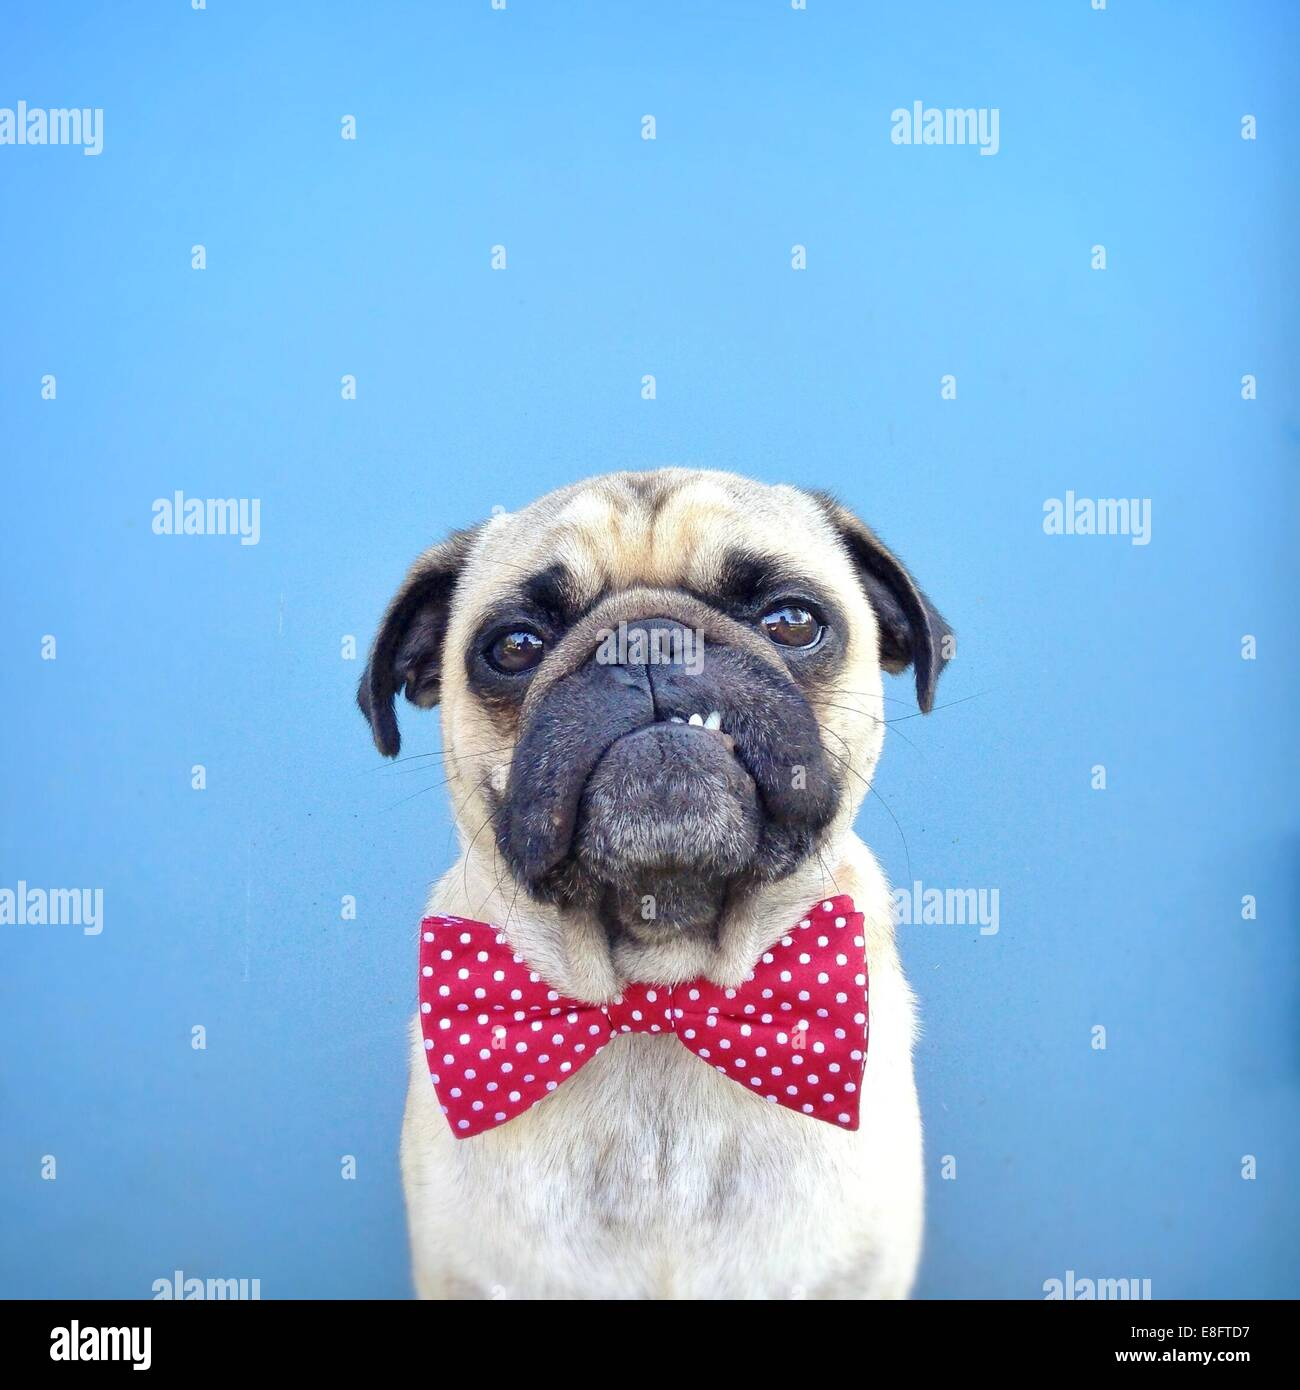 Portrait of a Pug dog wearing bow tie - Stock Image